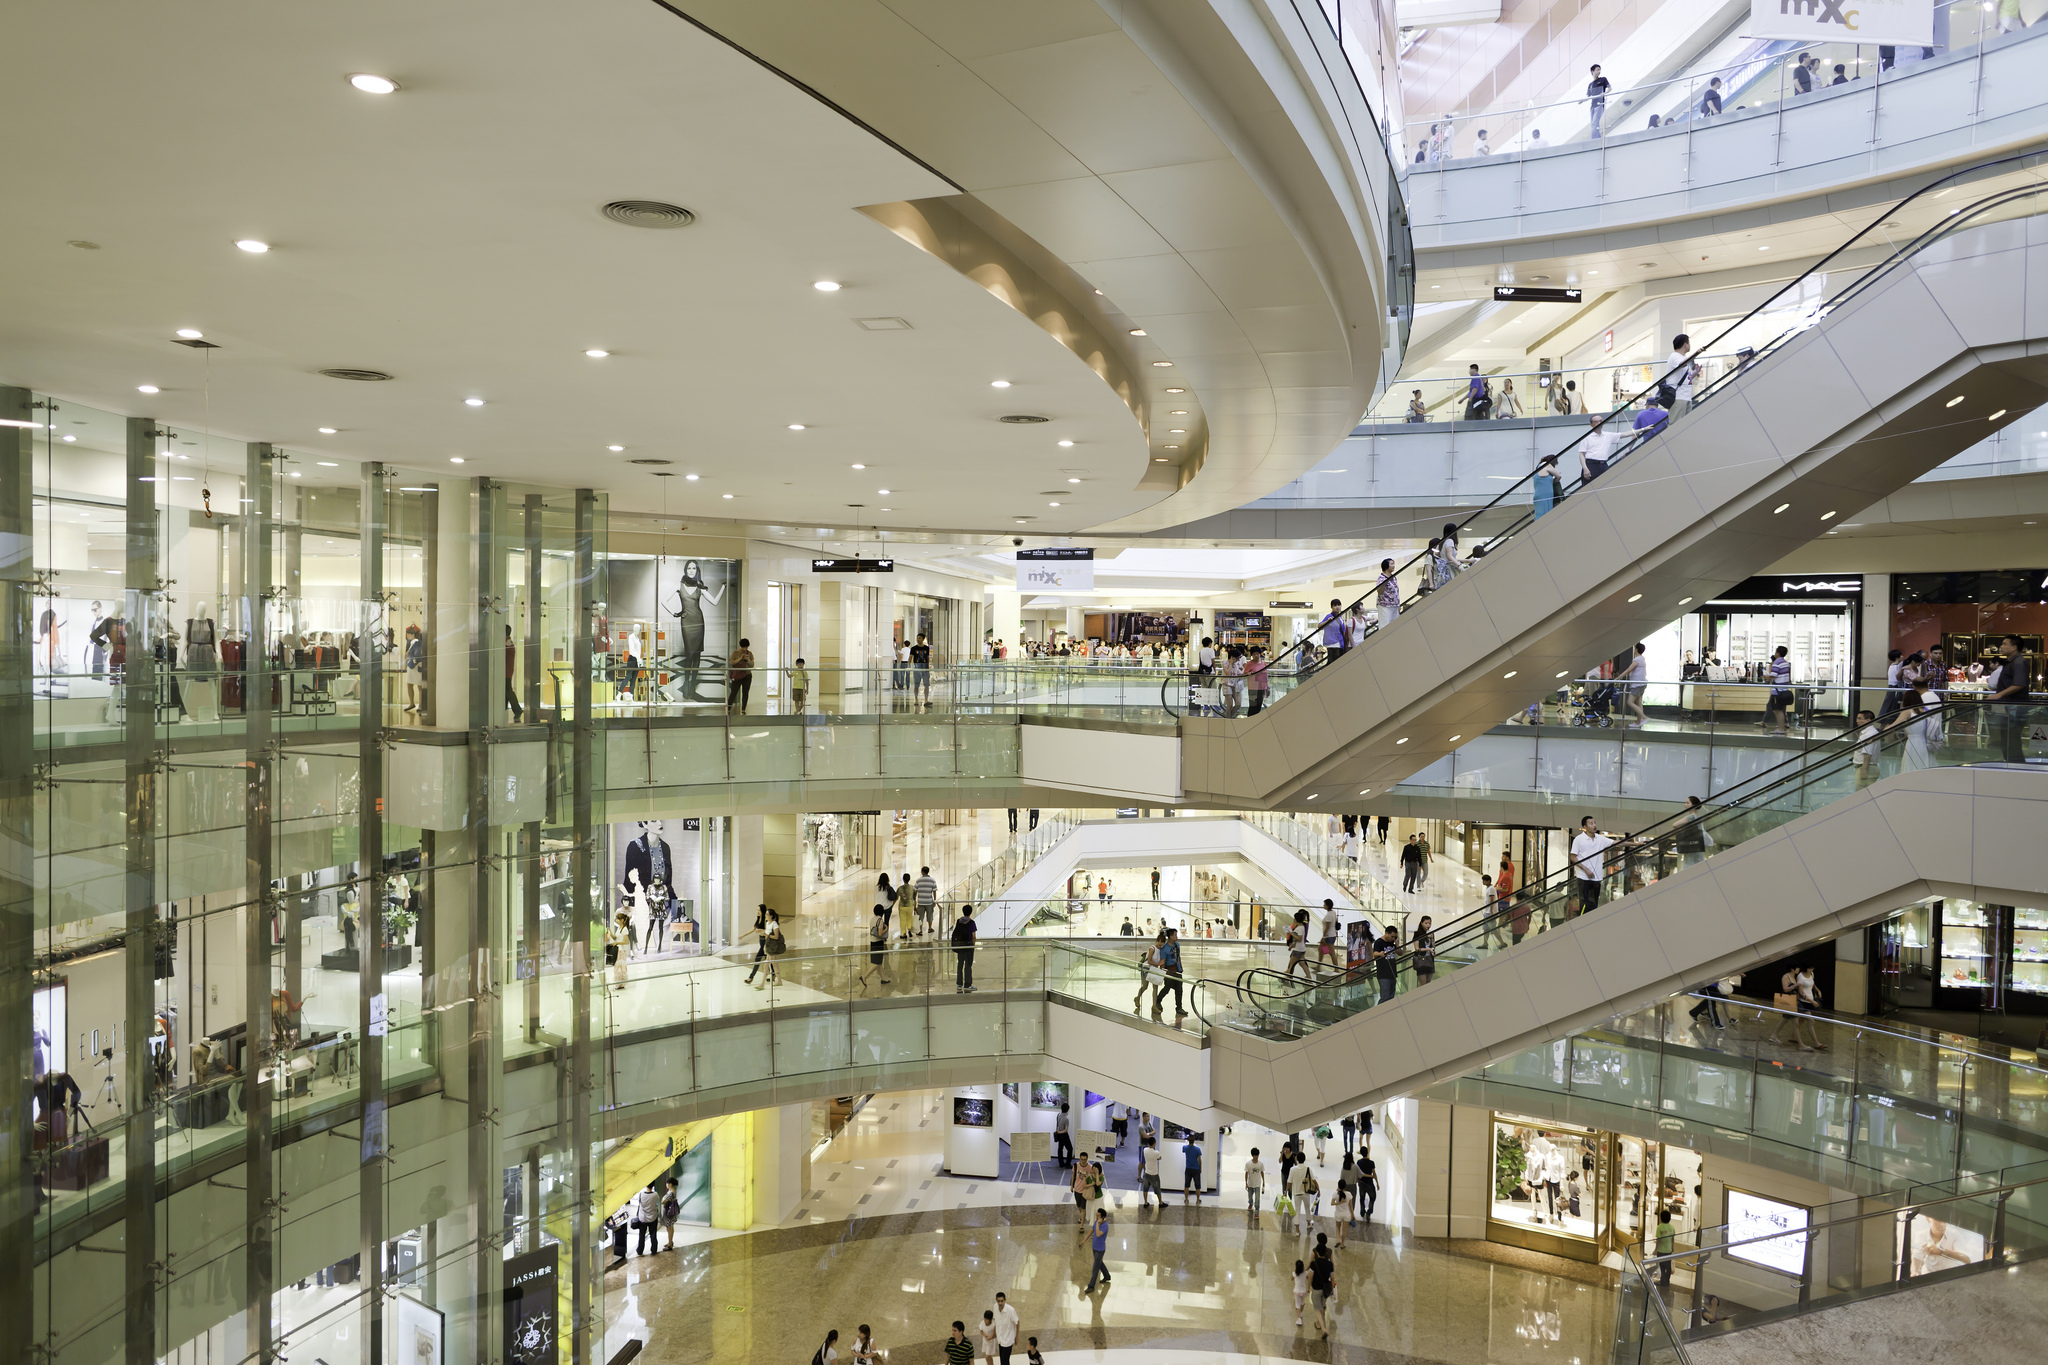 Mixc shopping mall shopping mall in shenzhen thousand wonders - Home design mall ...